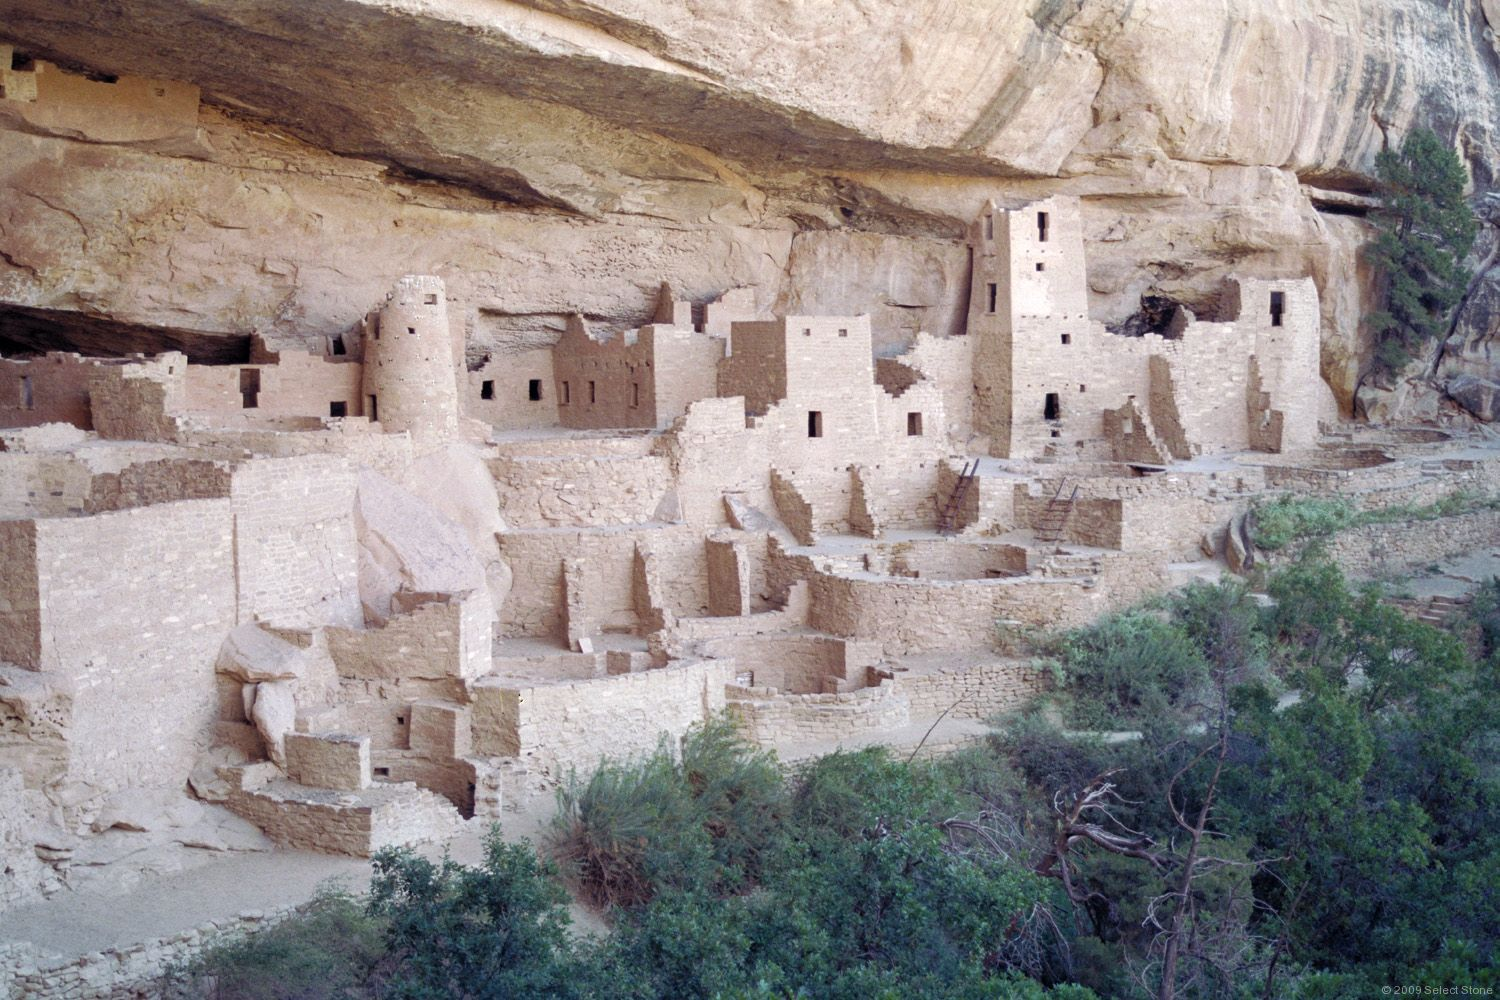 Ancient Pueblo Peoples Or Ancestral Pueblo Peoples Were An Ancient - Archaeological sites in the southwest us map